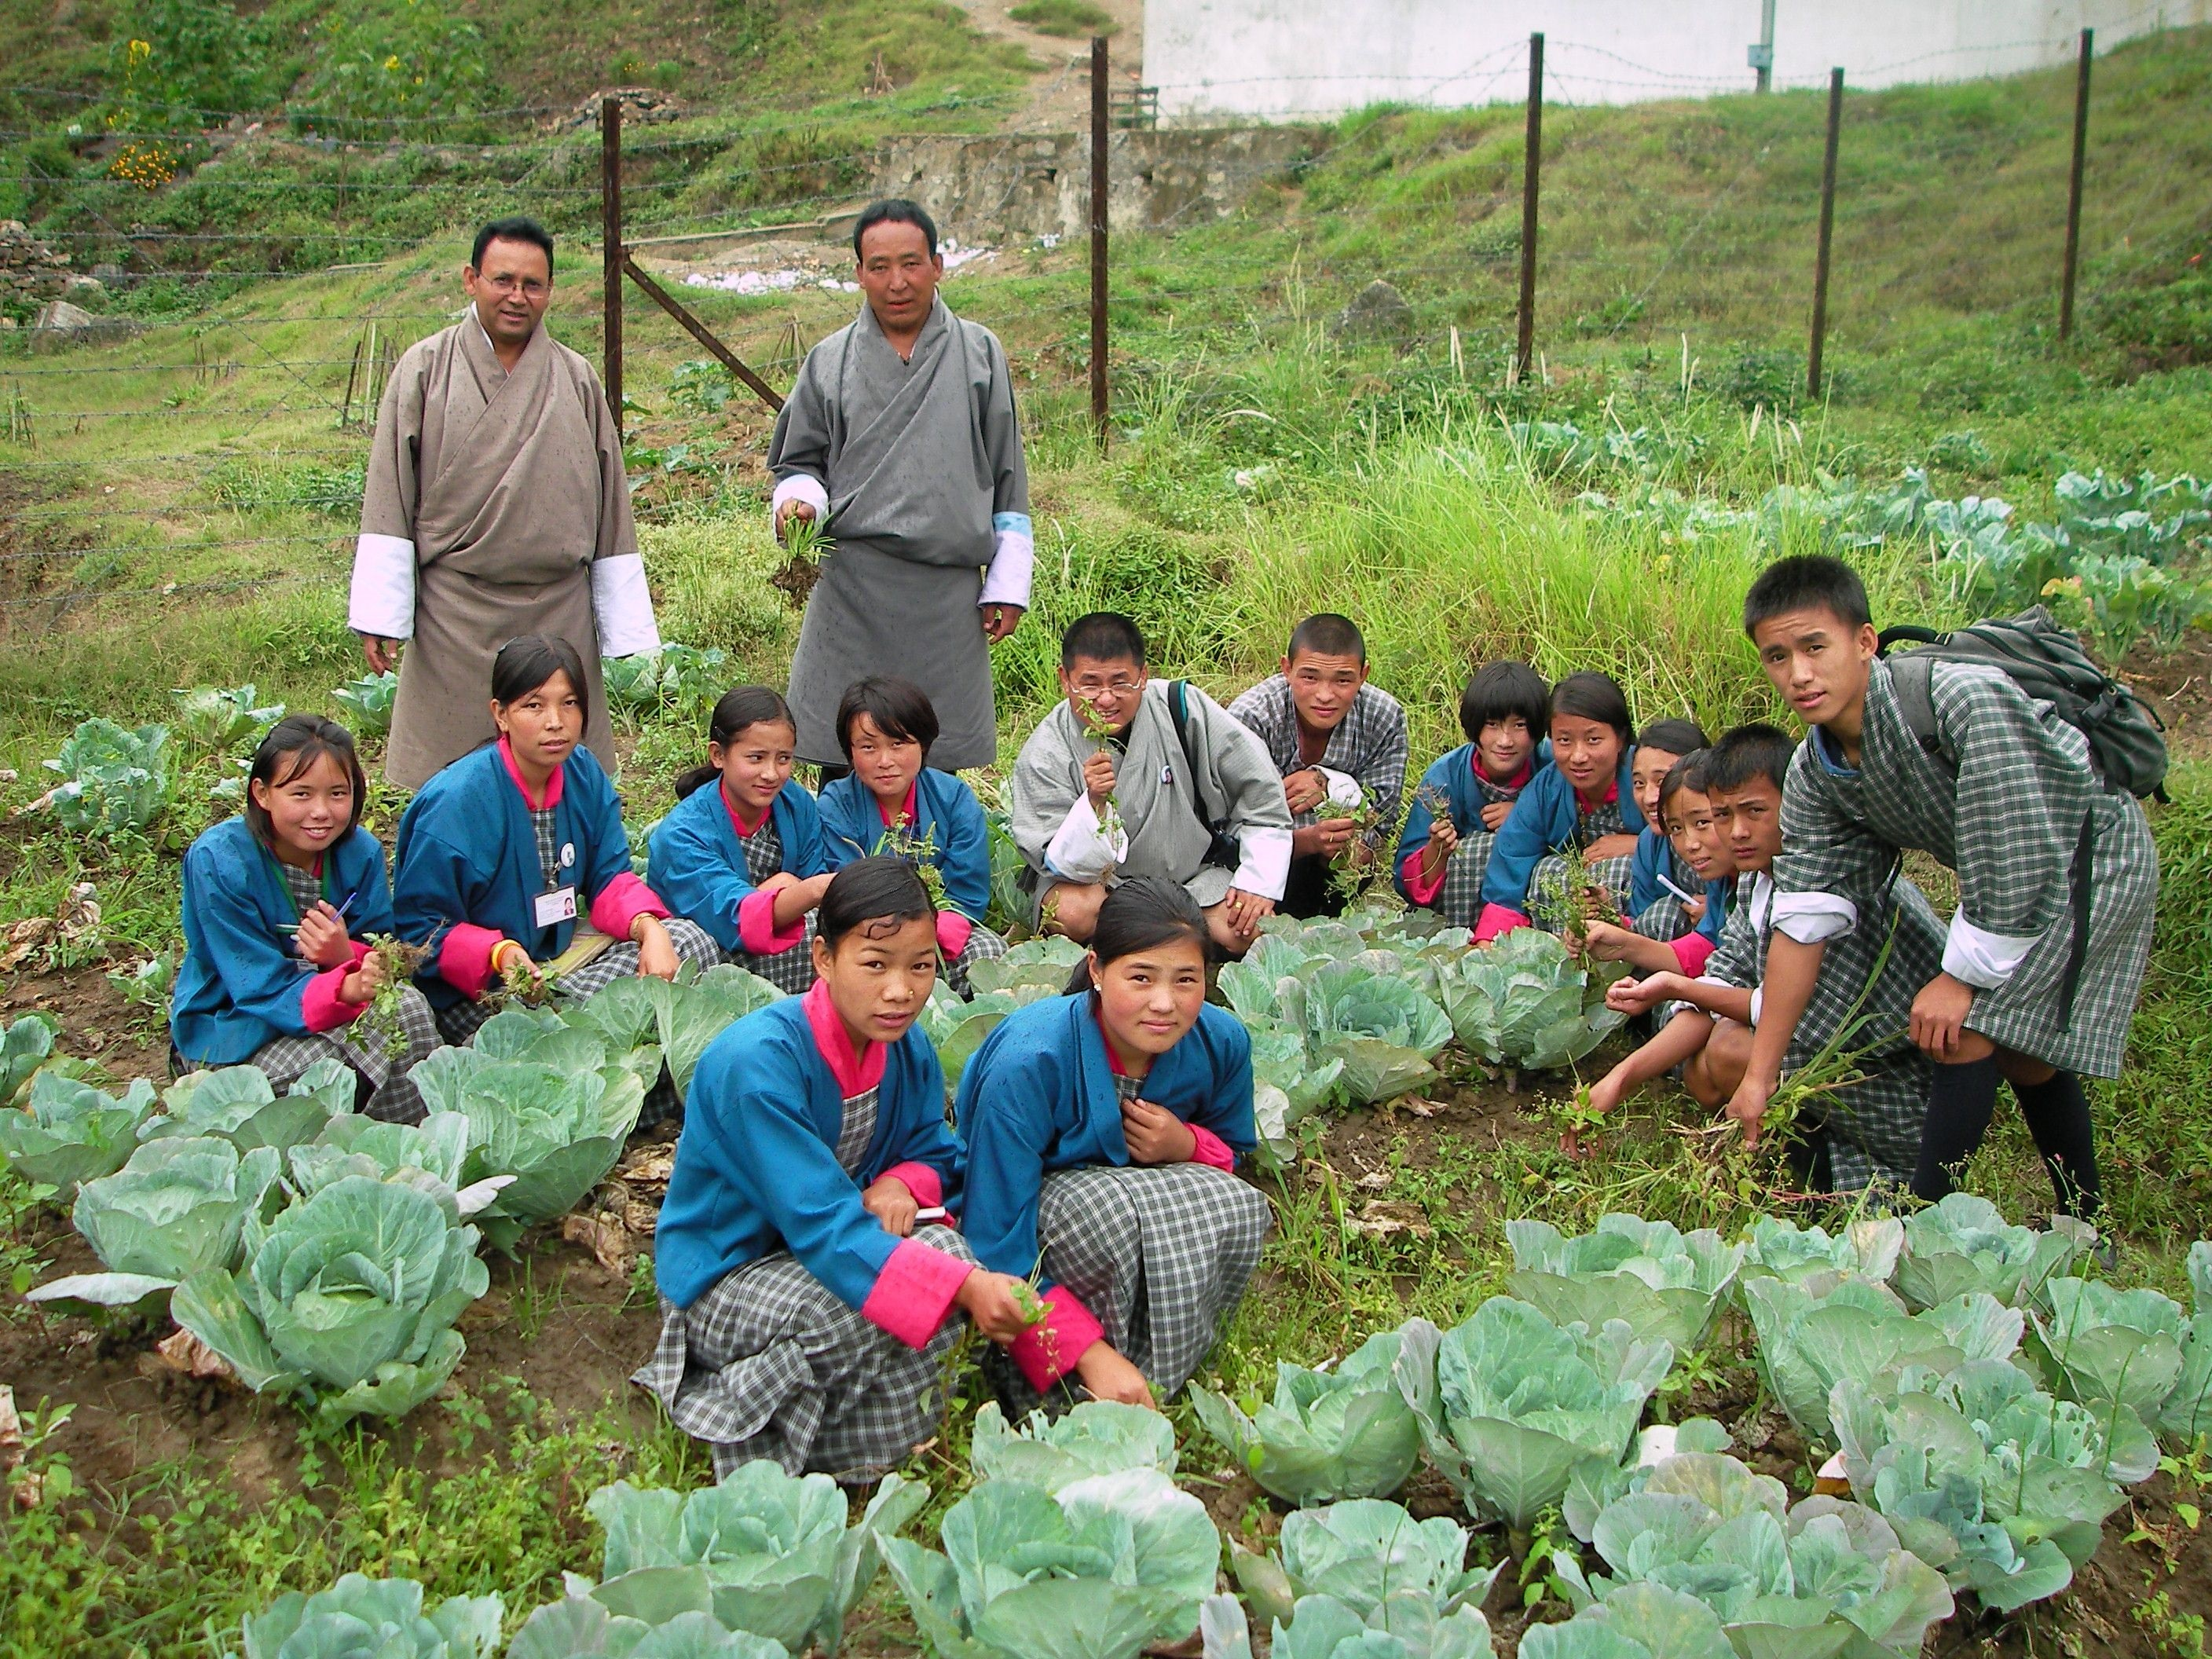 New video: Agriculture Program at School in Bhutan -sustainable farming with EM-